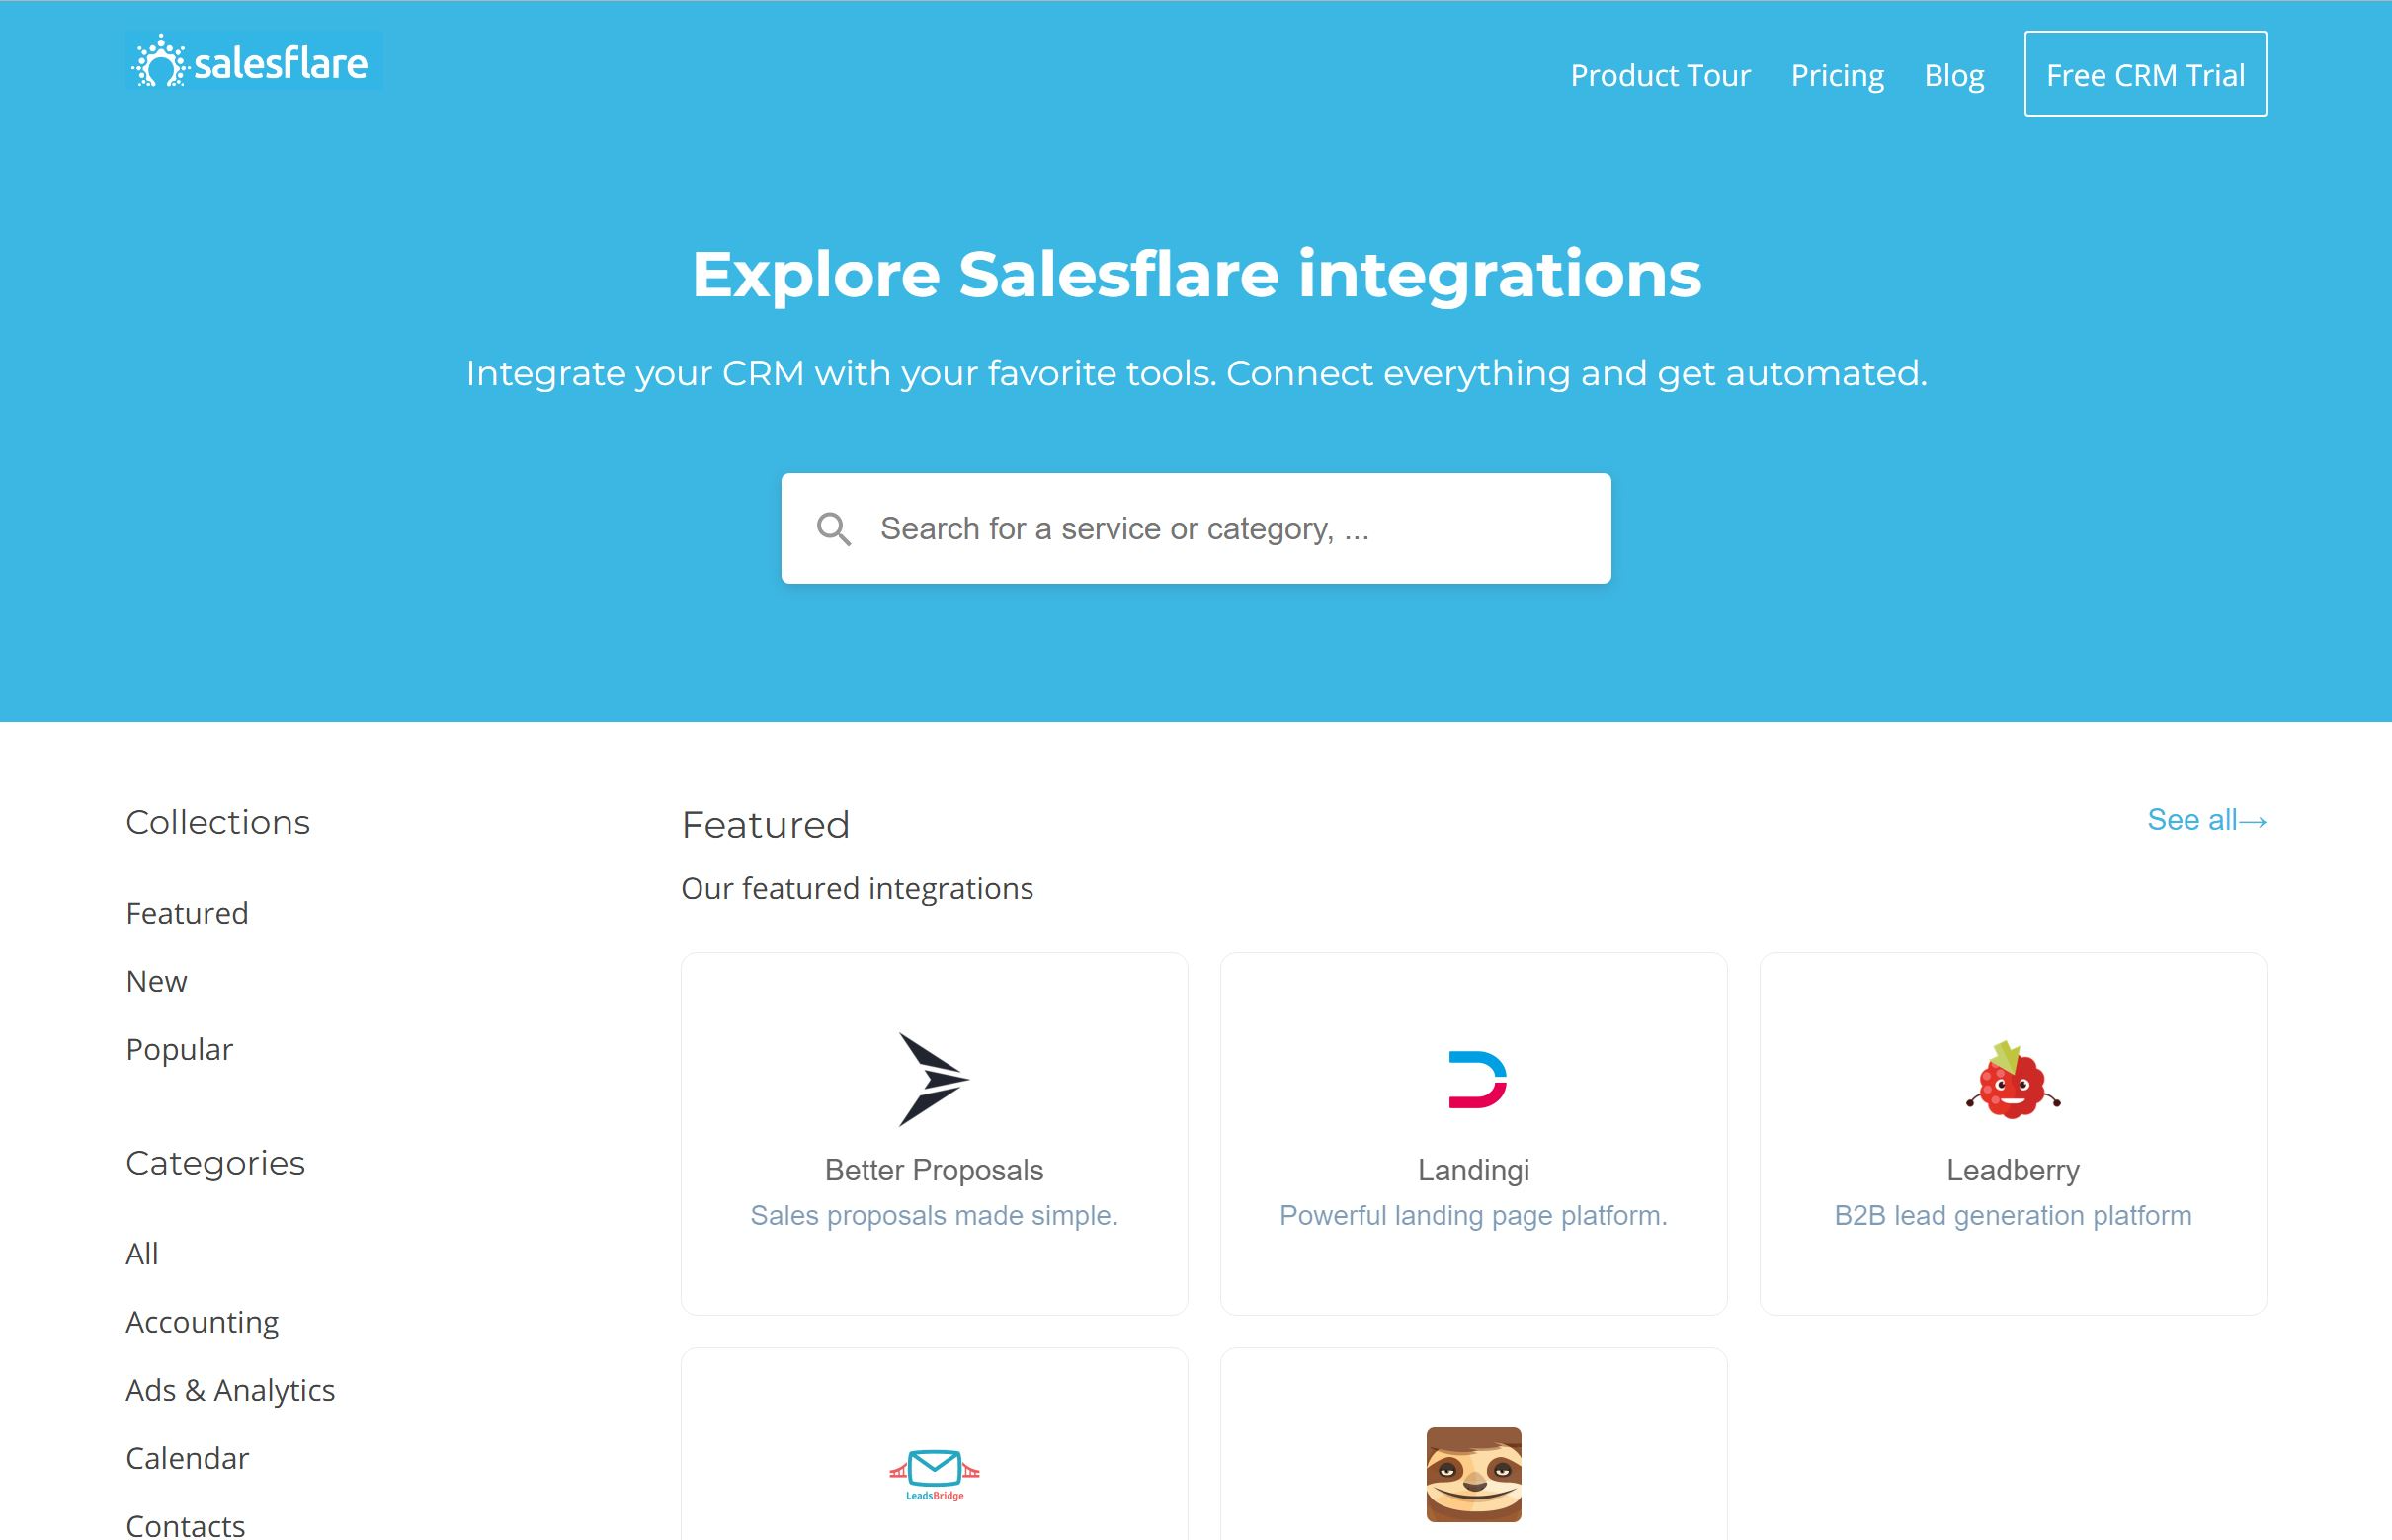 Salesflare integrates seamlessly with your emails, calendar, phone, ... but also with 2000+ other apps. It integrates with Zapier, Integromat, PieSync, ... so you can easily hook up any other tool you're using and streamline your processes.